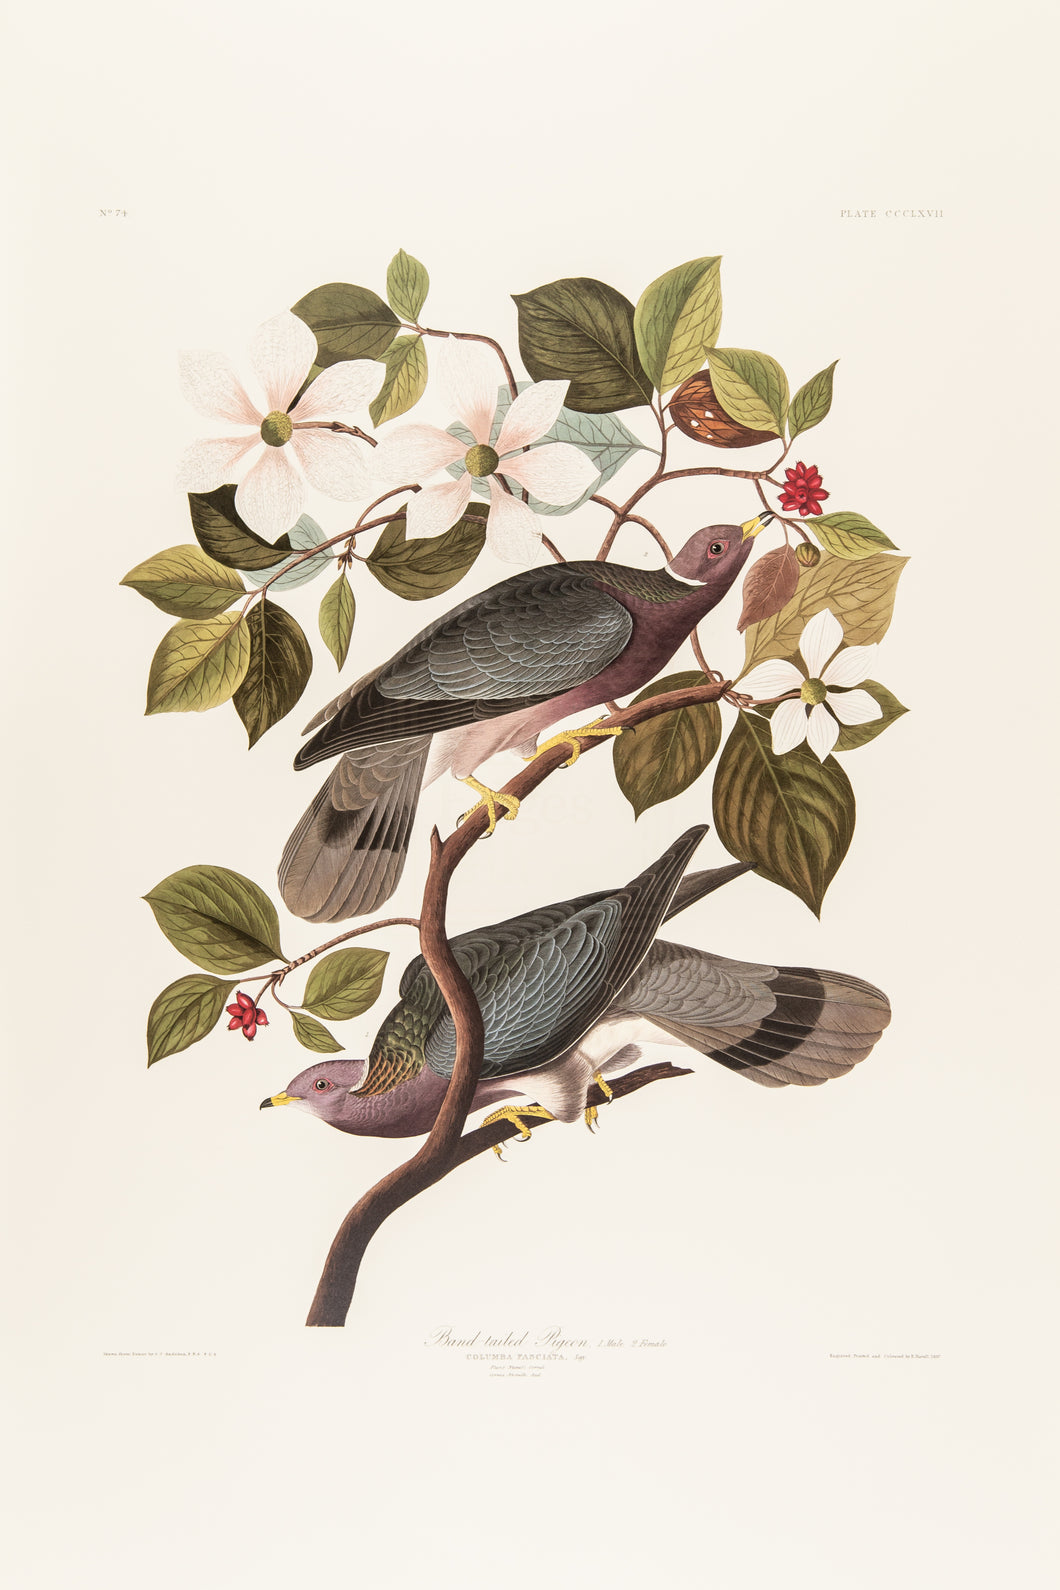 Band-Tailed Pigeon